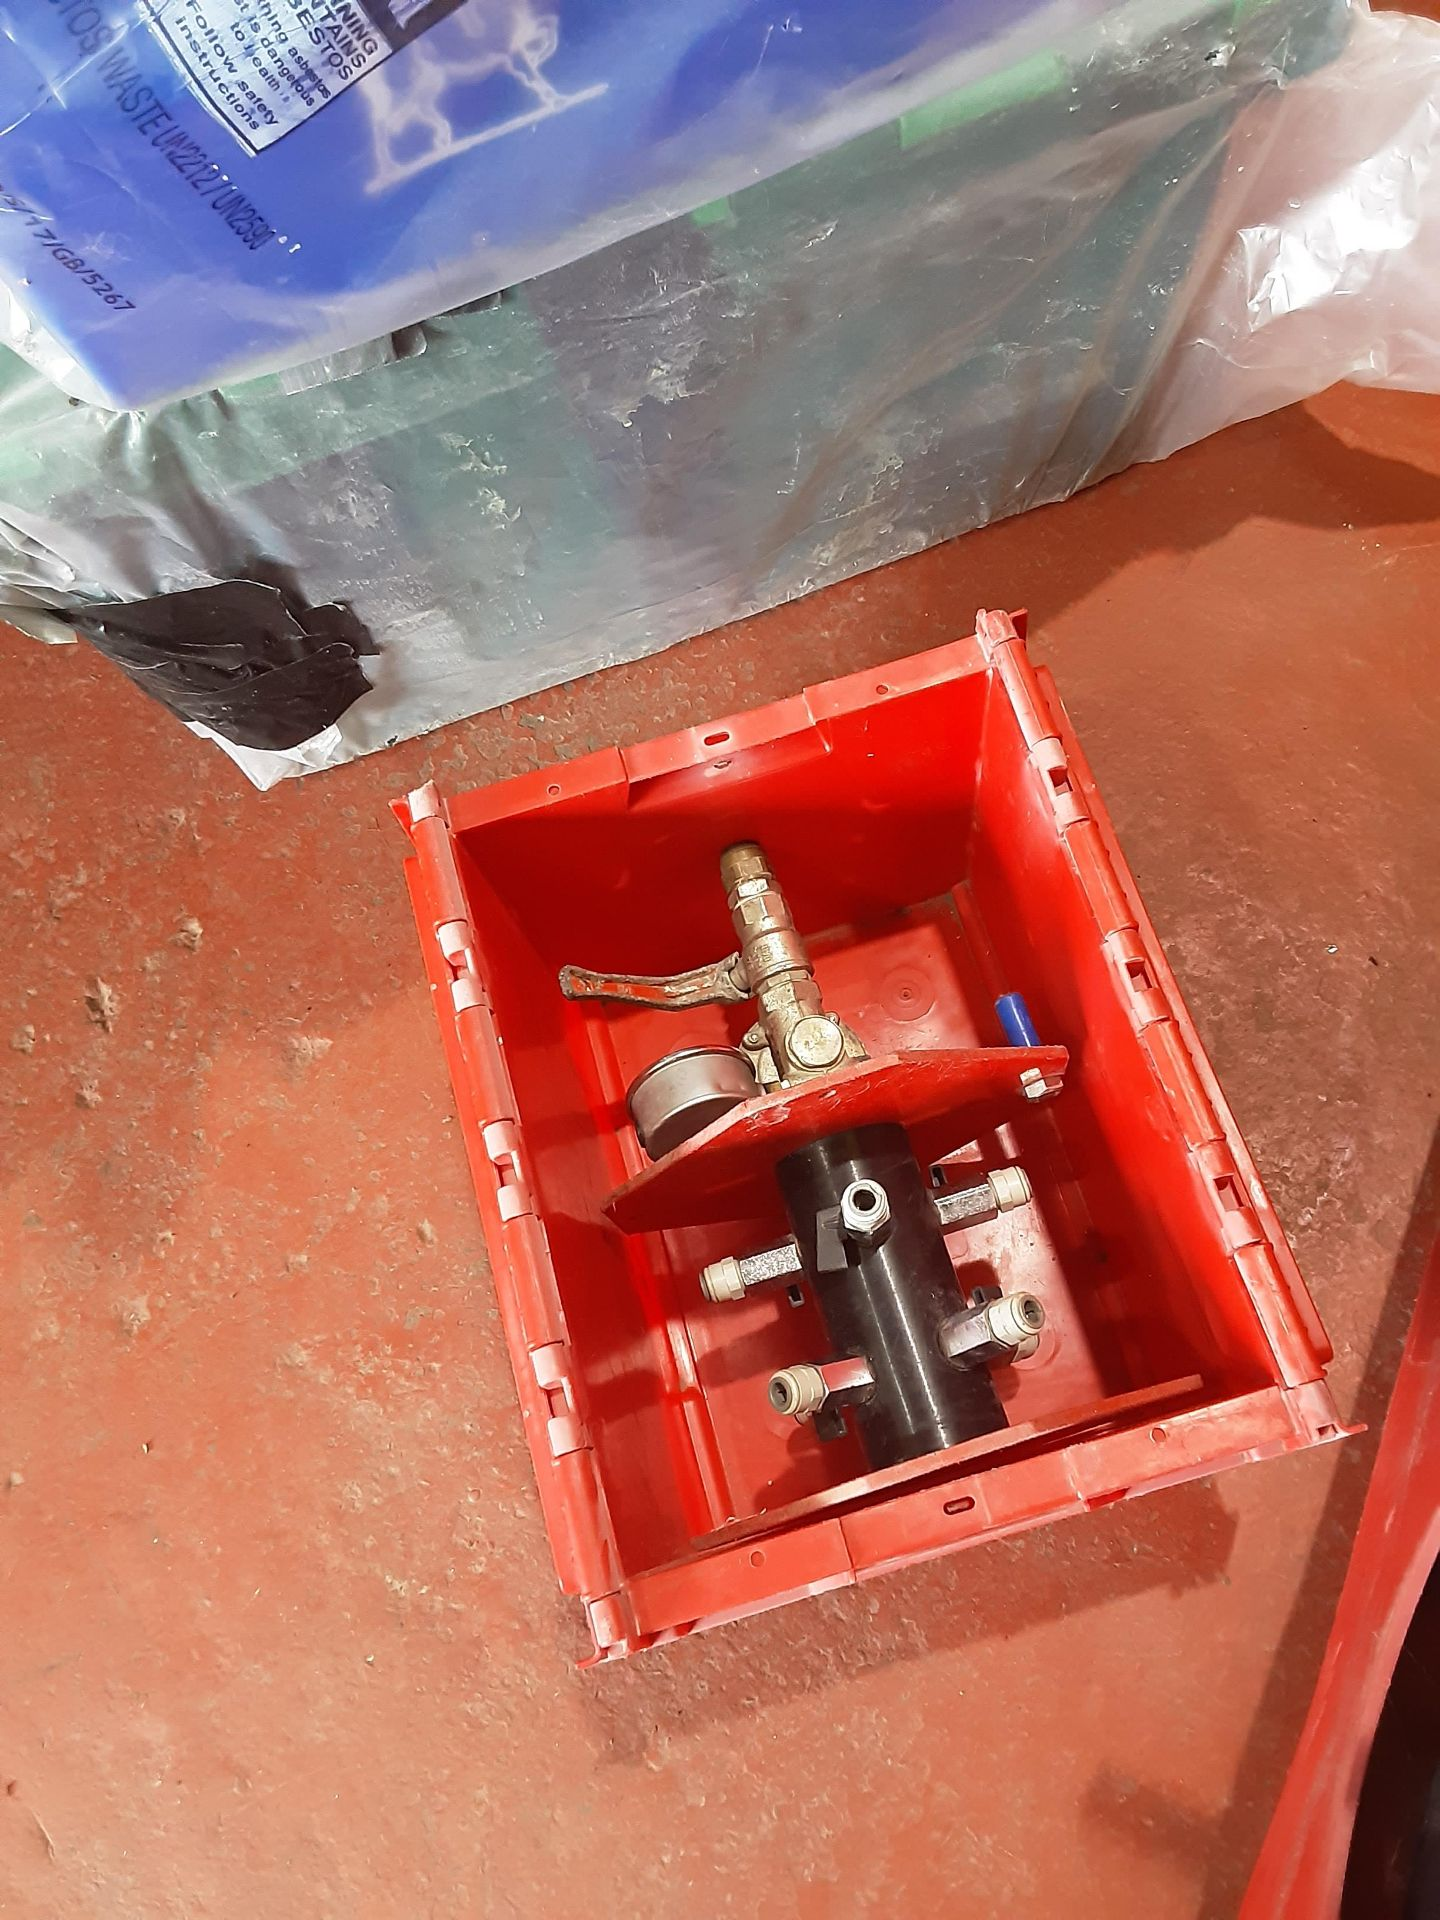 The Red Box Water Injection Machine & Accessories, Serial No. 6062, (2014) - Image 6 of 10